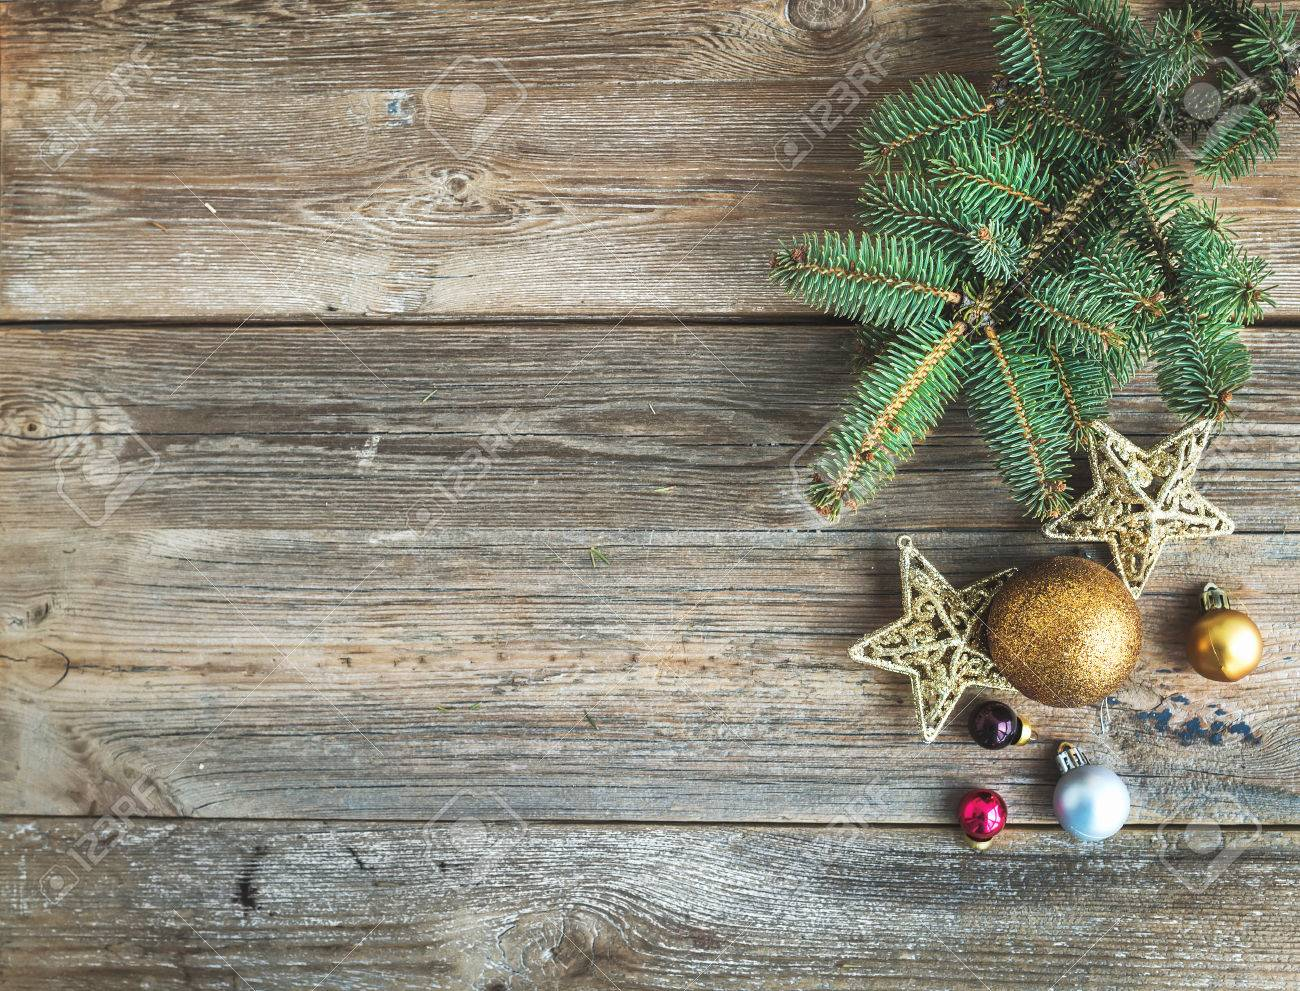 Christmas Or New Year Rustic Wooden Background With Toy Decorations And Fur Tree Branch Top